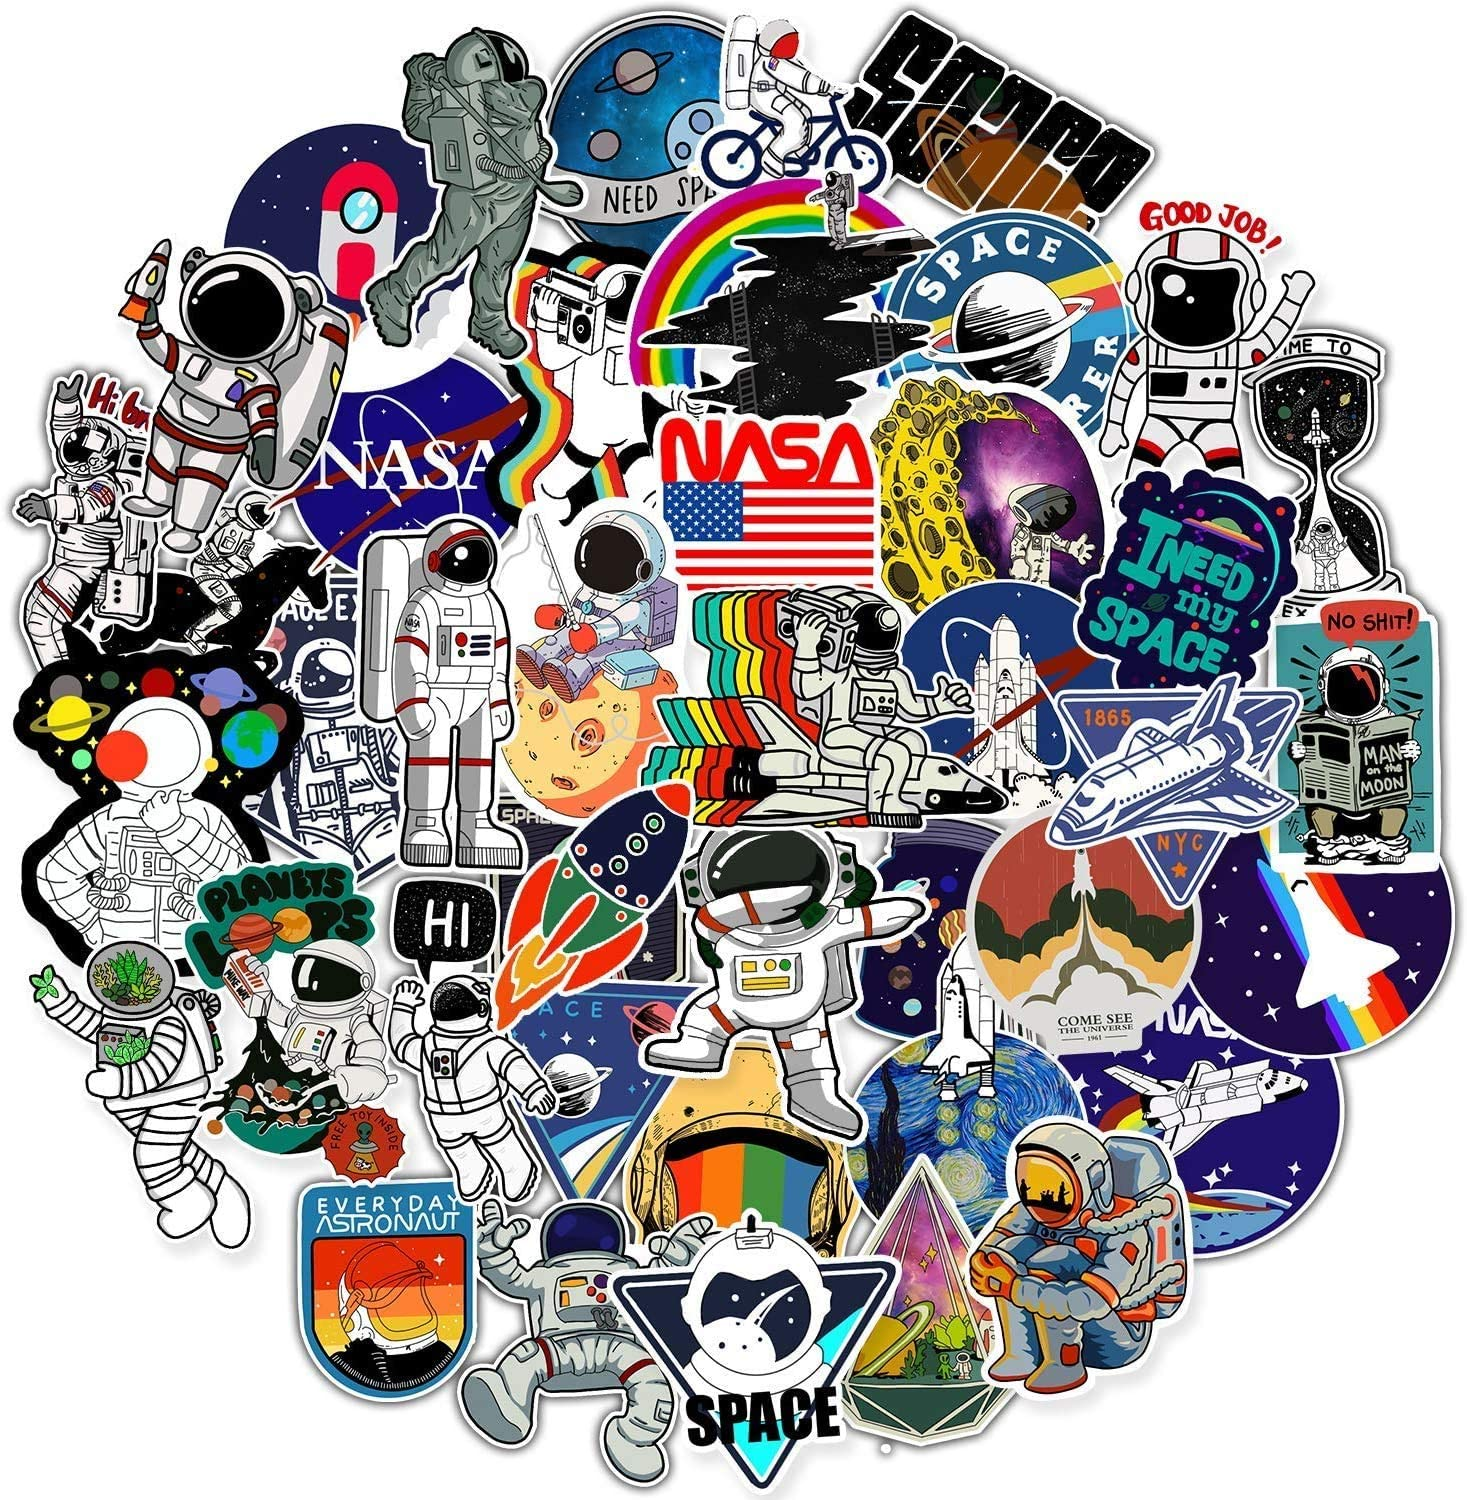 50 Pcs NASA Sticker Pack, Space Explorer Astronaut Vinyl Stickers for Laptop, Water Bottle, Skateboard DIY Decorations, Waterproof Cool Outer Space Stickers for Teens Kids Adults Gift